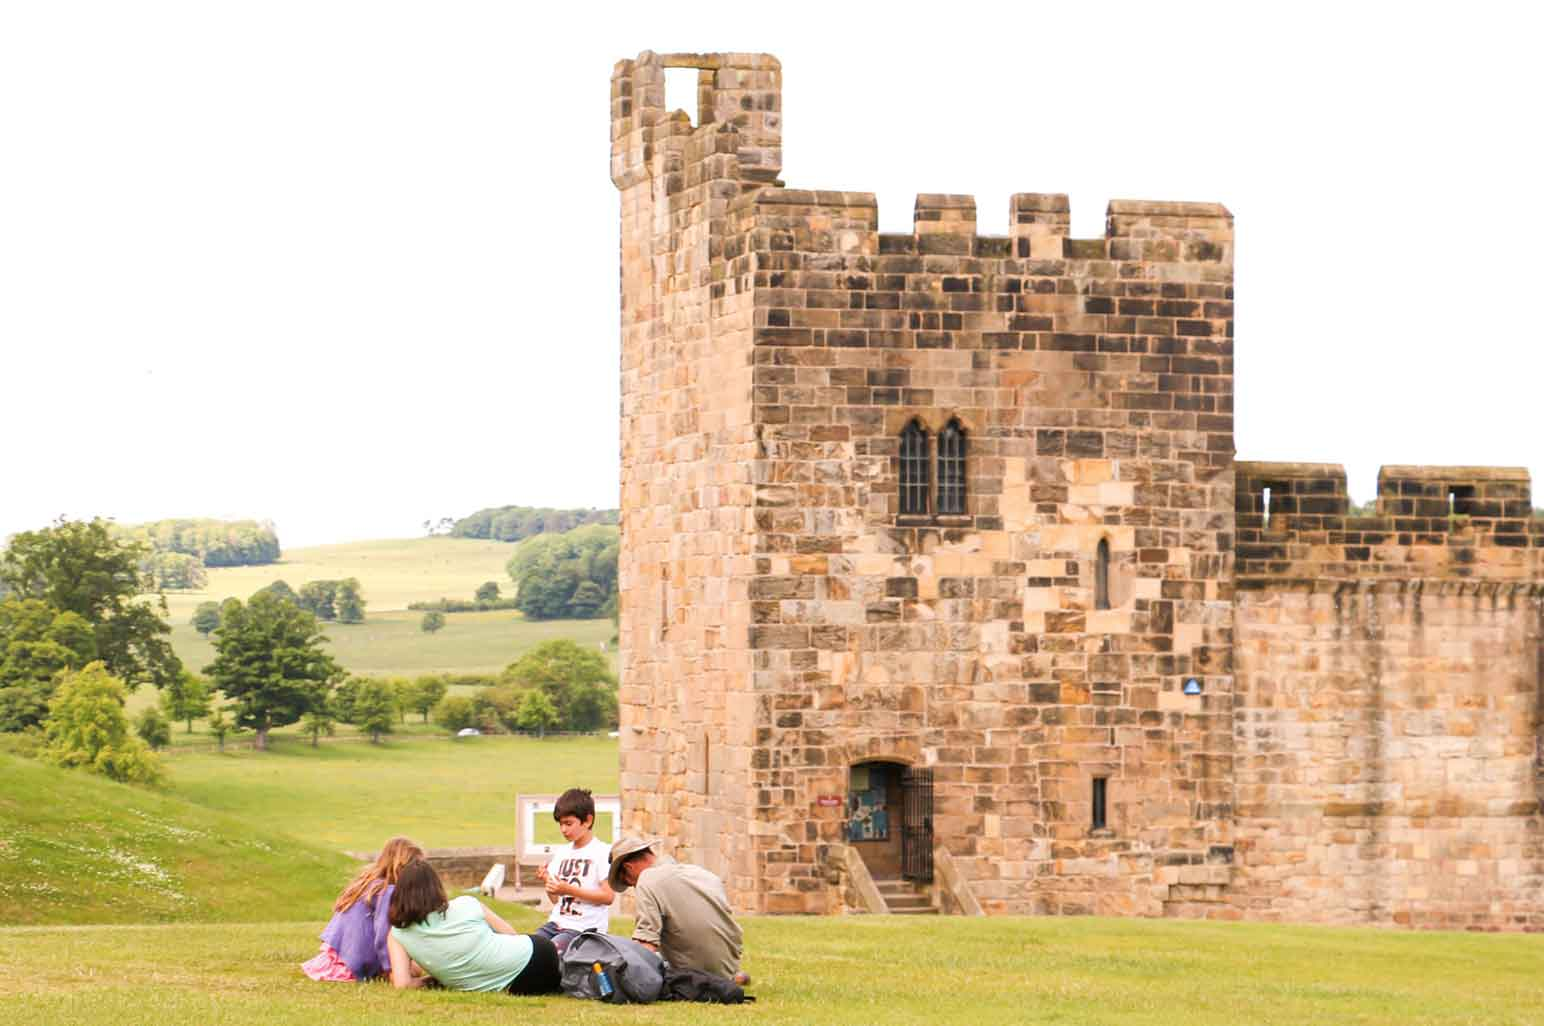 9 Harry Potter Destinations You Can Visit In Real Life - Alnwick Castle